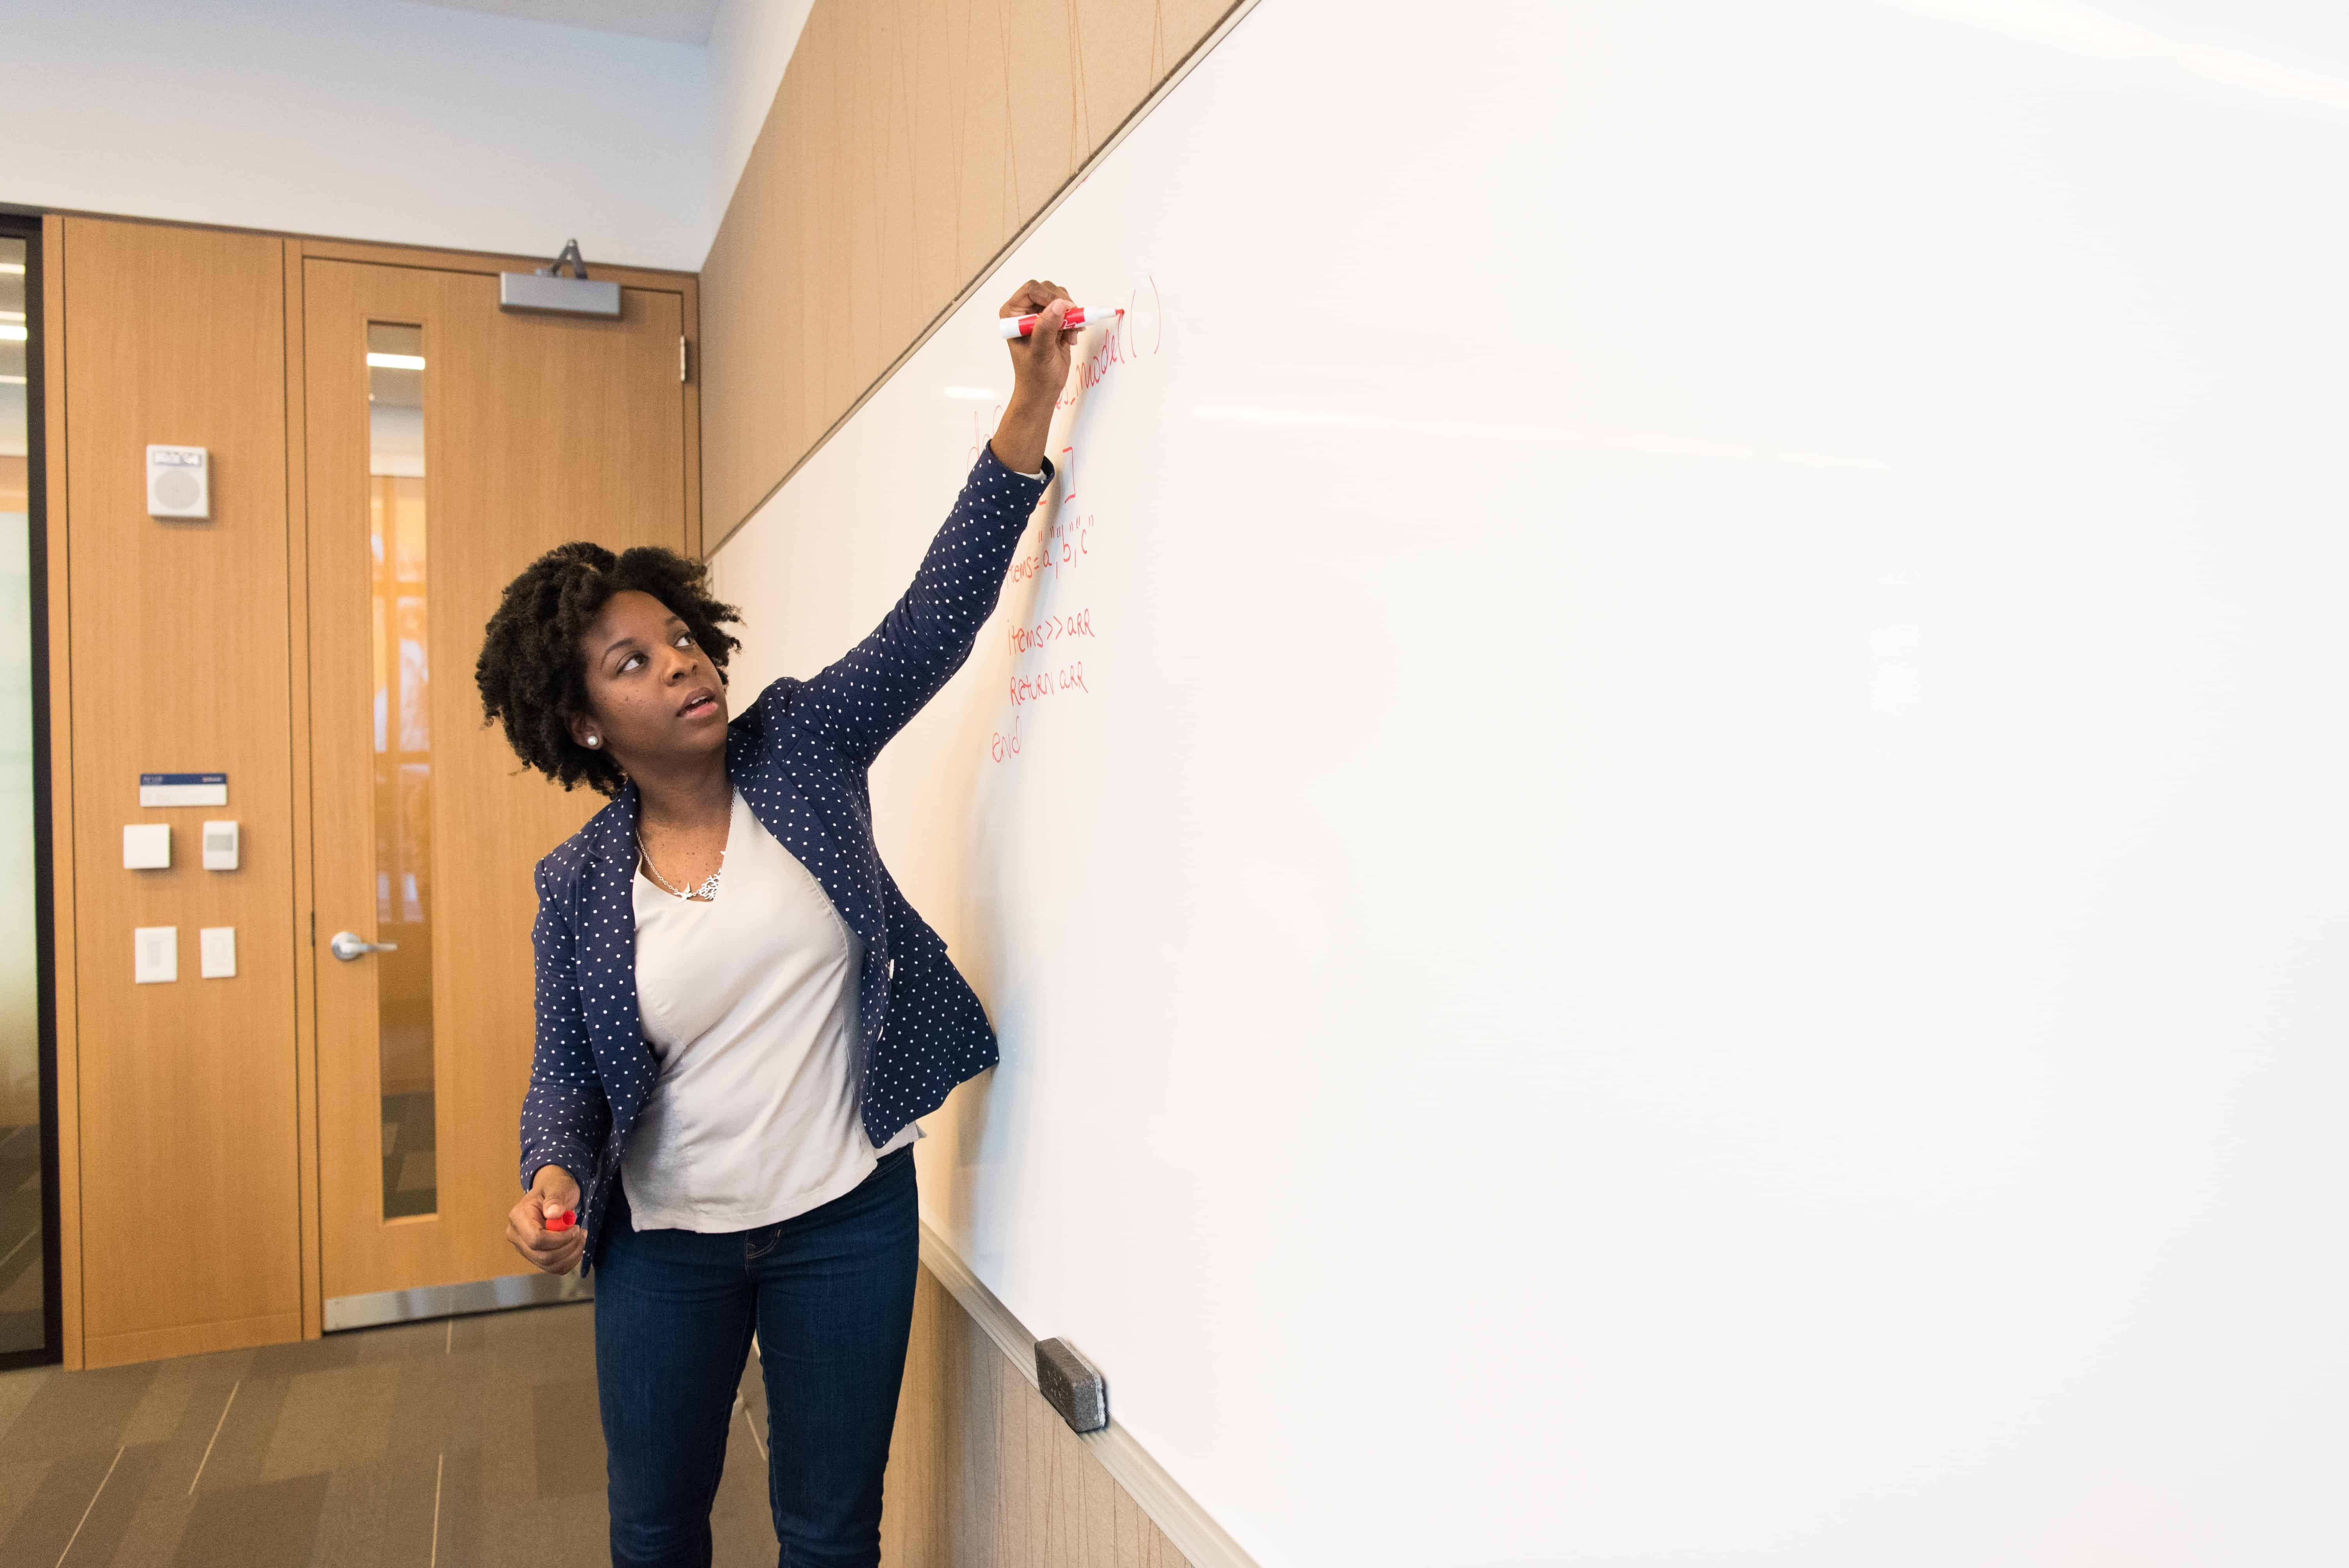 A teacher stands, writing on a white board in the front of a classroom.